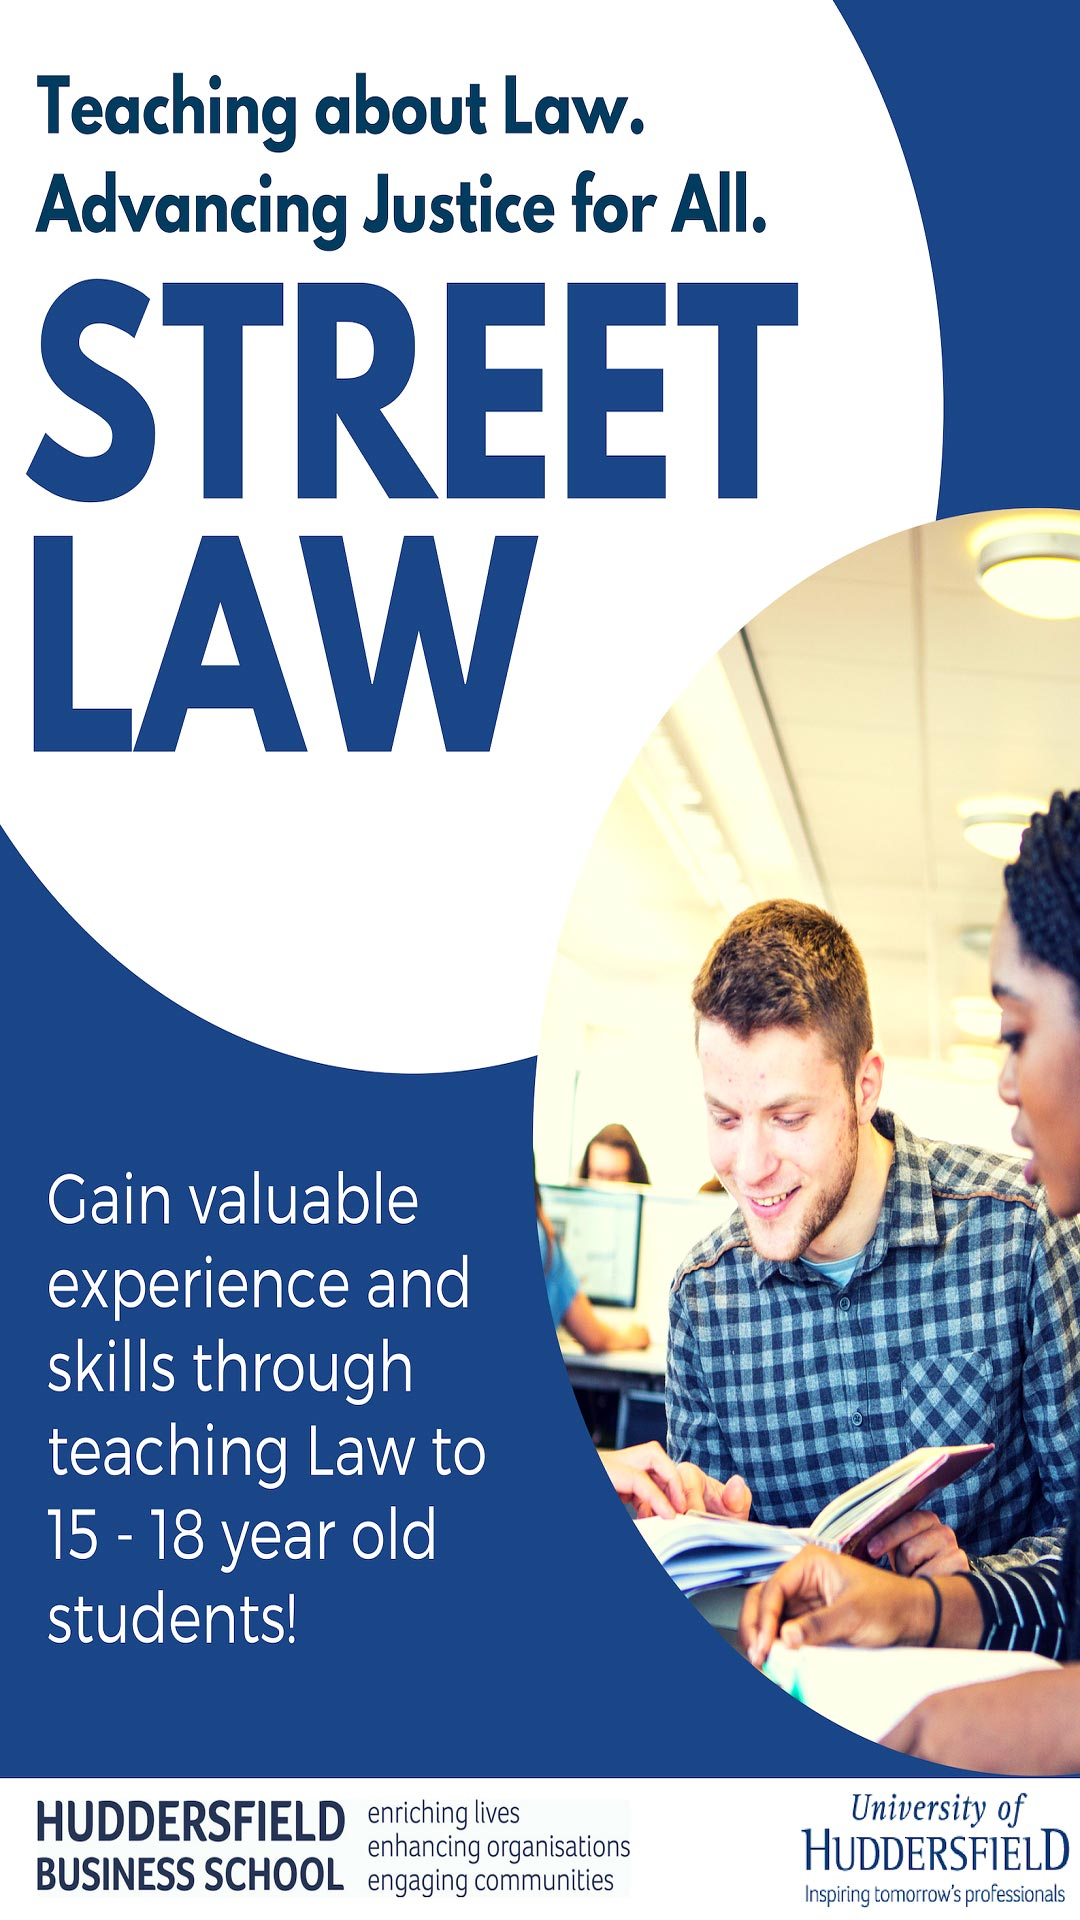 Street law information banner about teaching to 15 - 18 year old students.